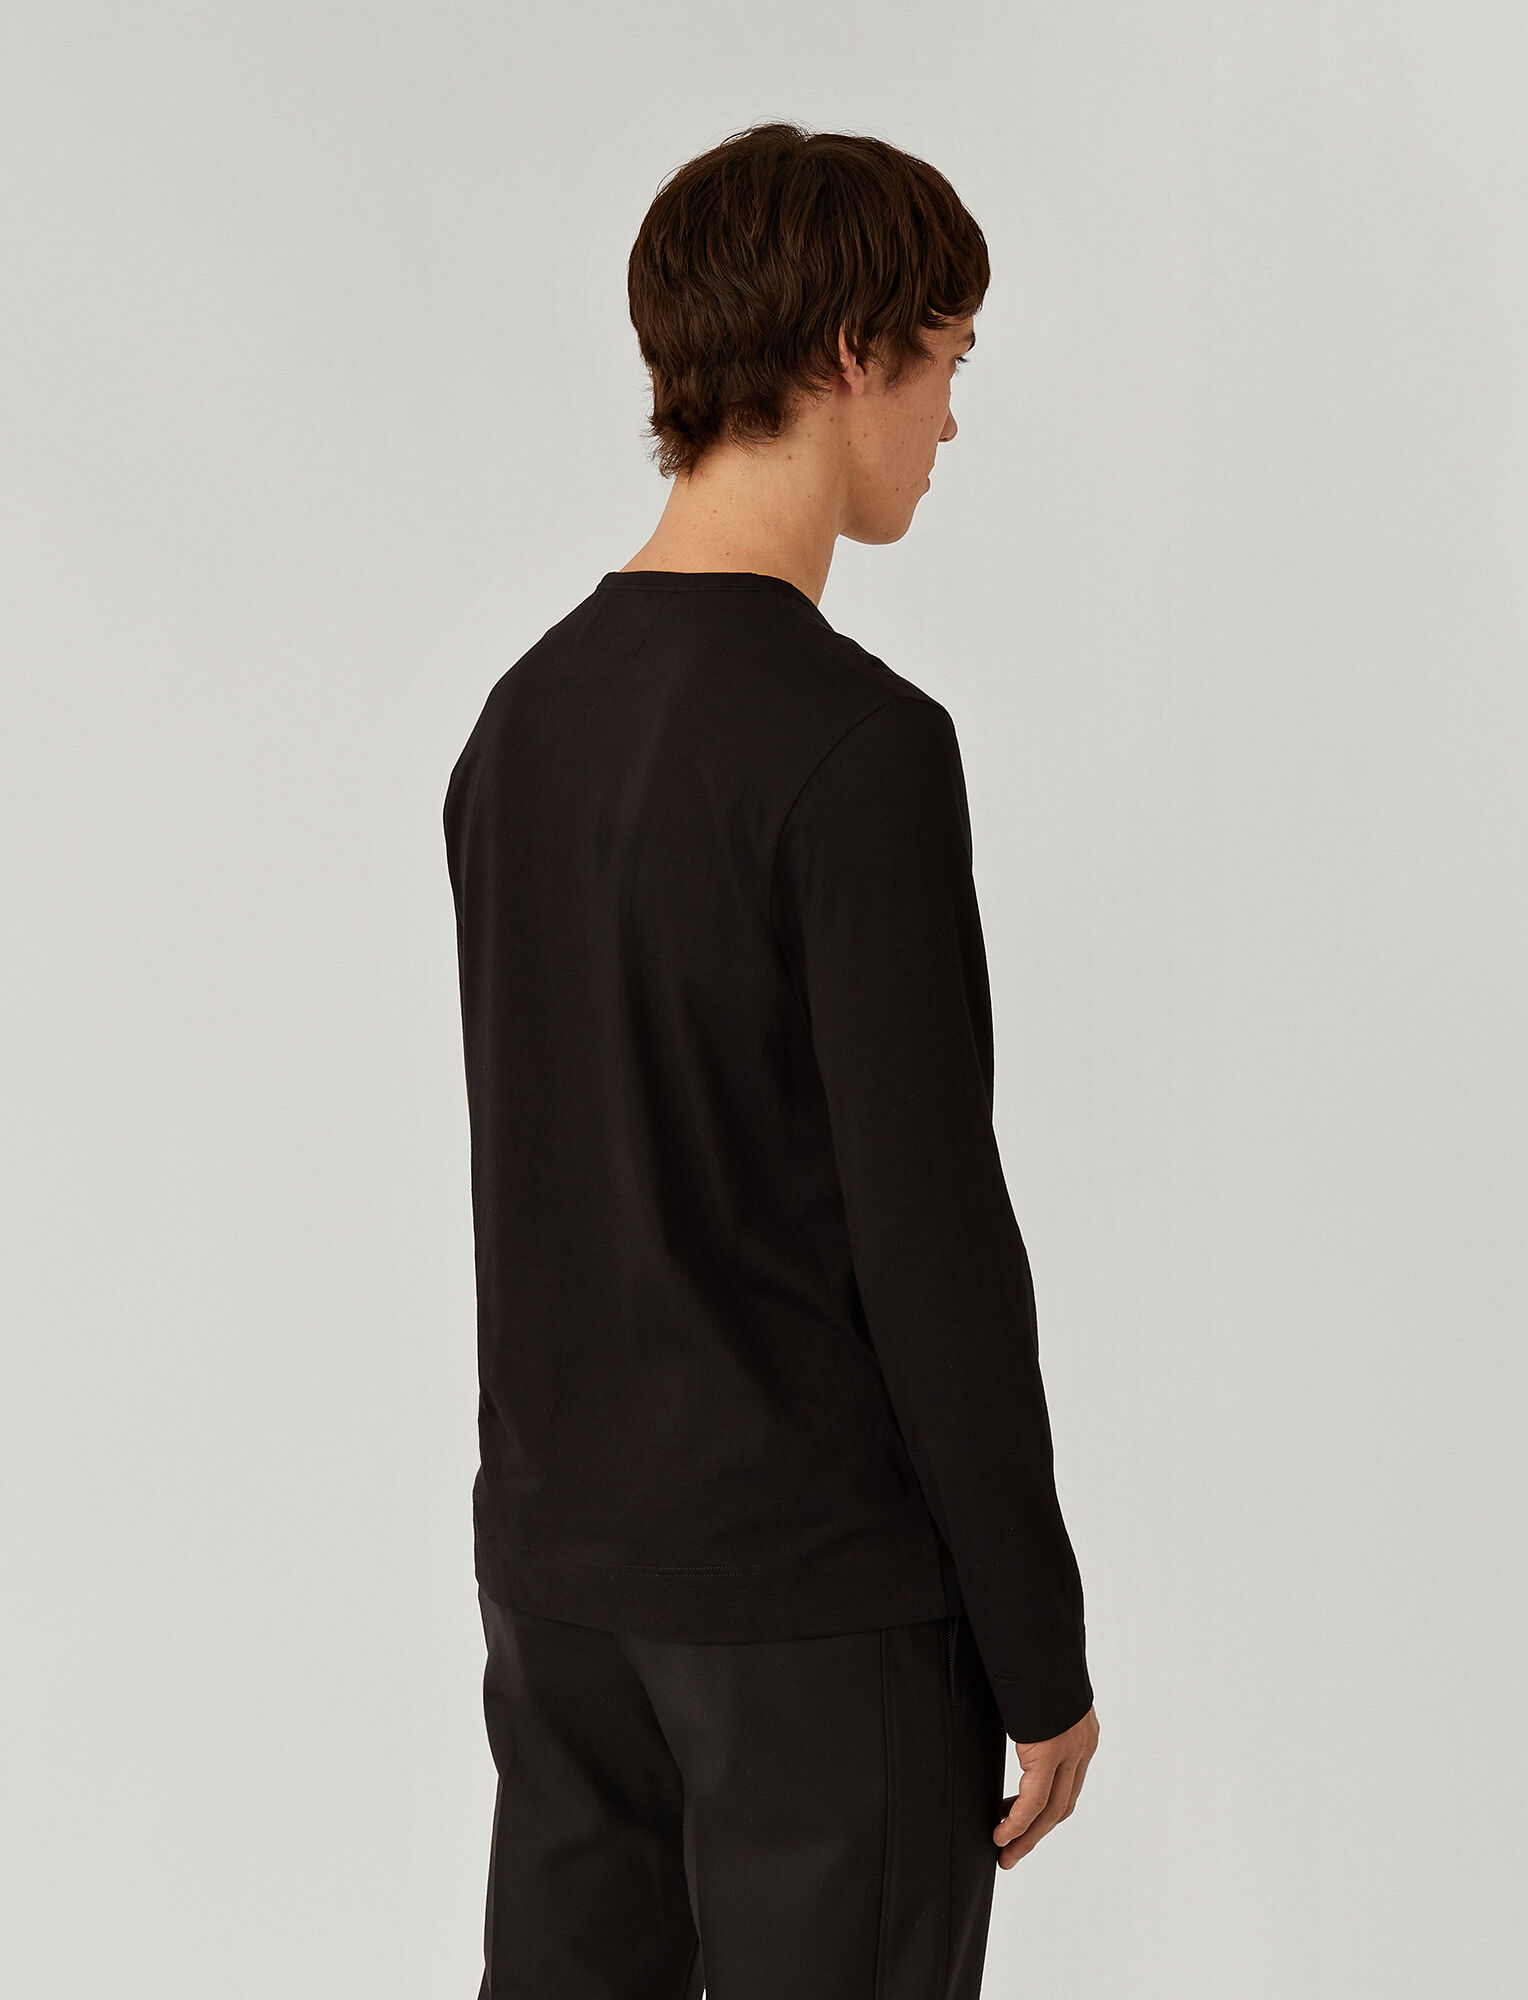 Joseph, Mercerized Jersey Top, in BLACK